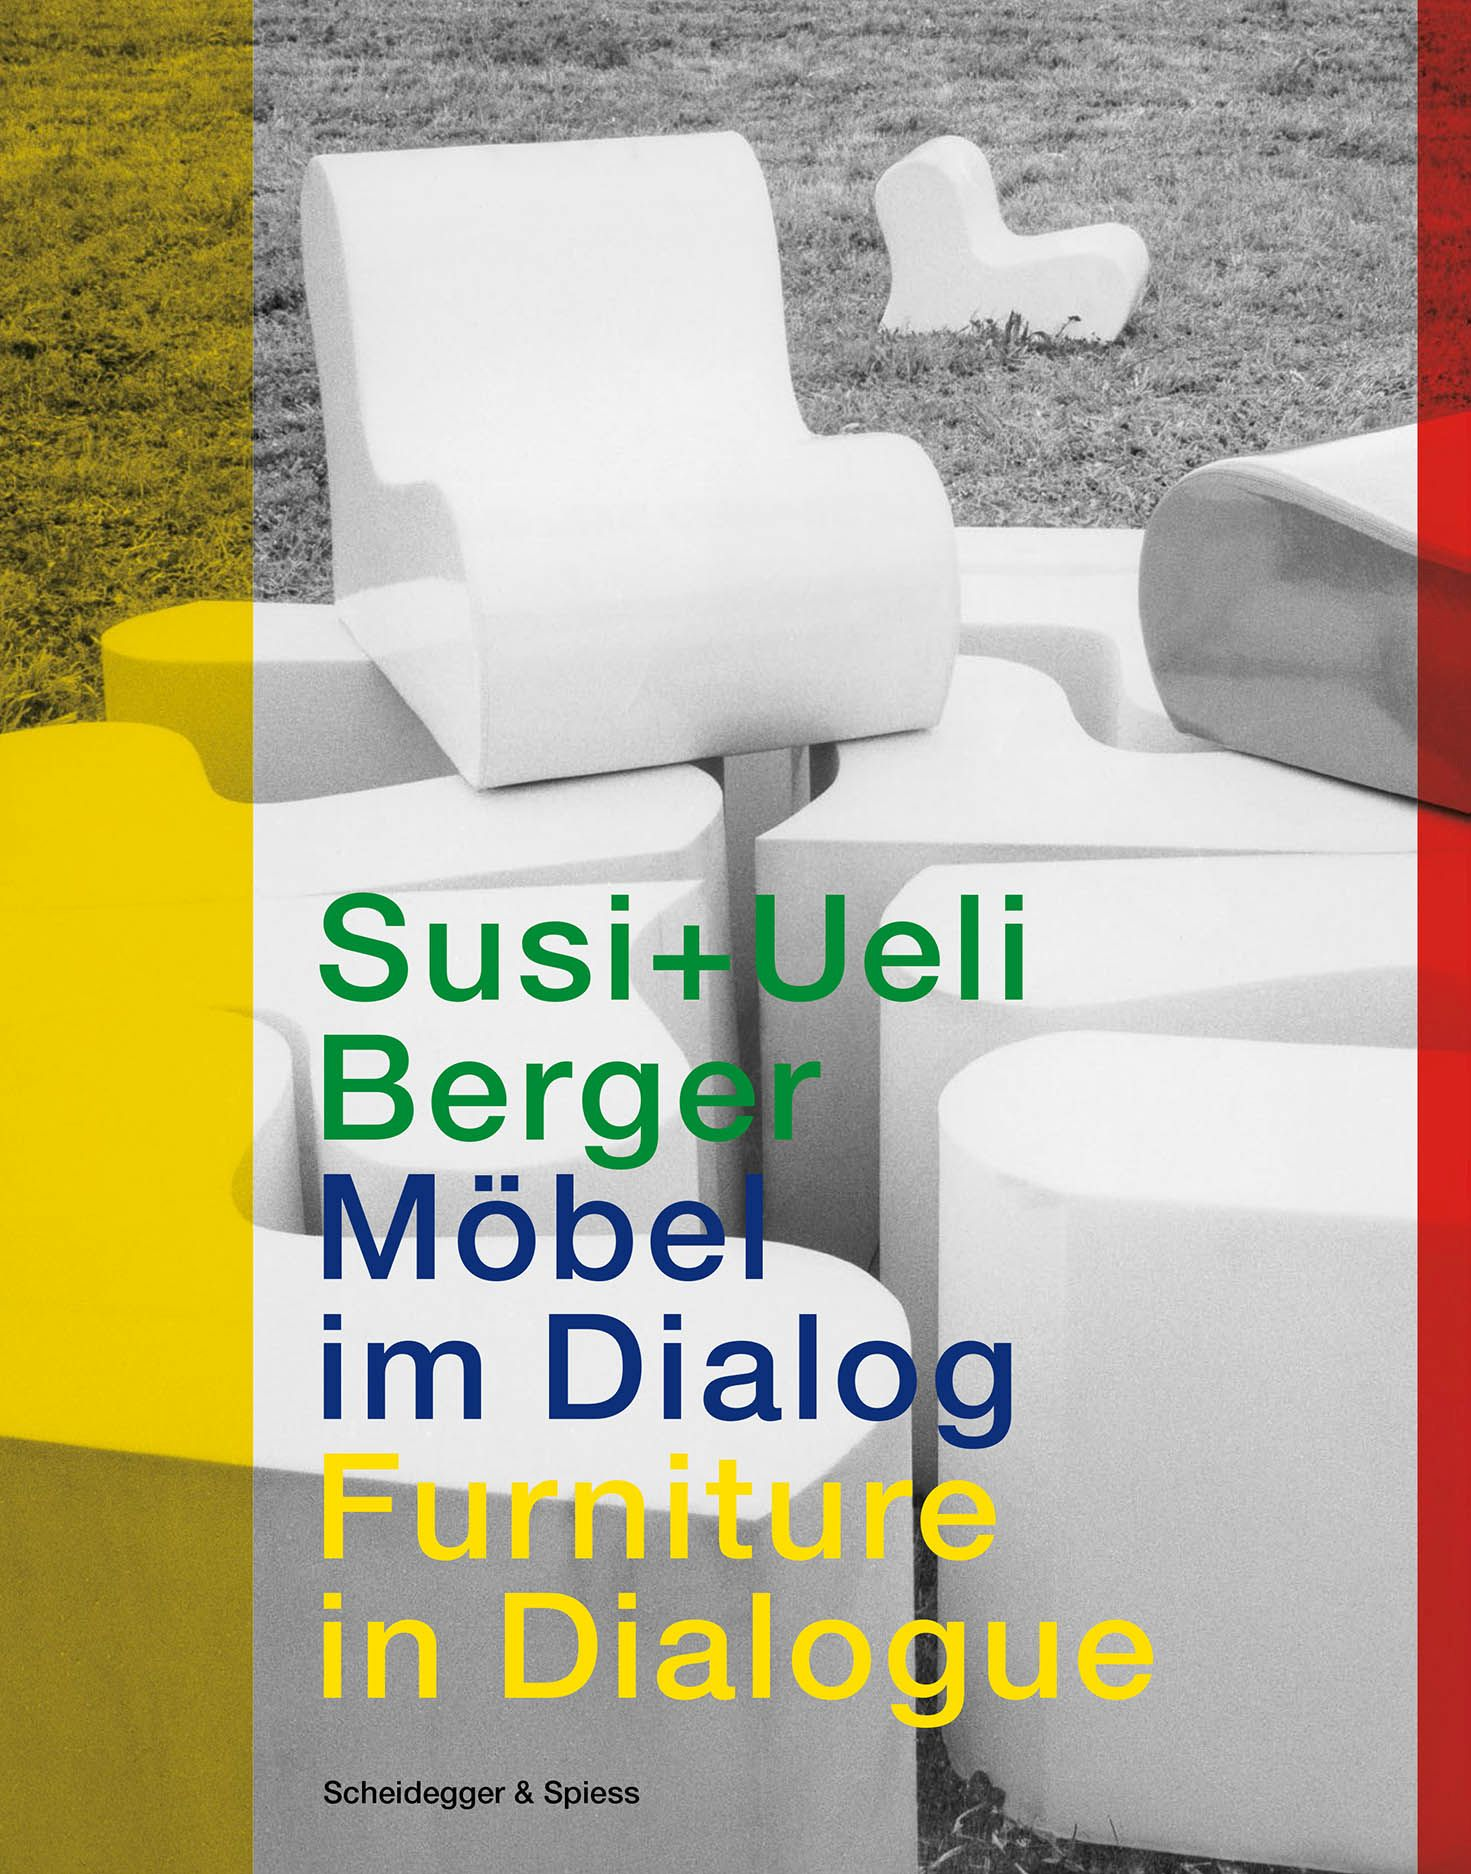 Susi and Ueli Berger: Furniture in Dialogue